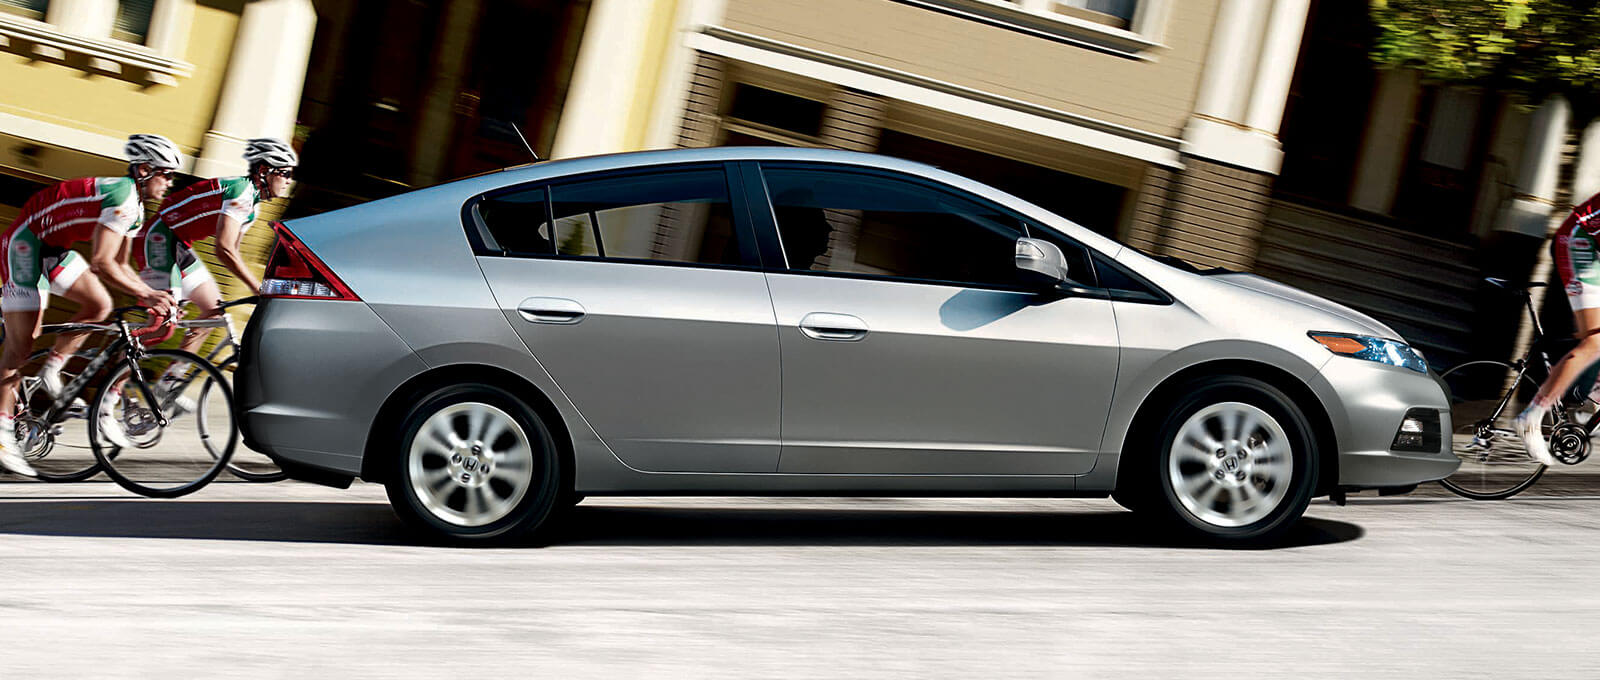 2014 Honda Insight side view